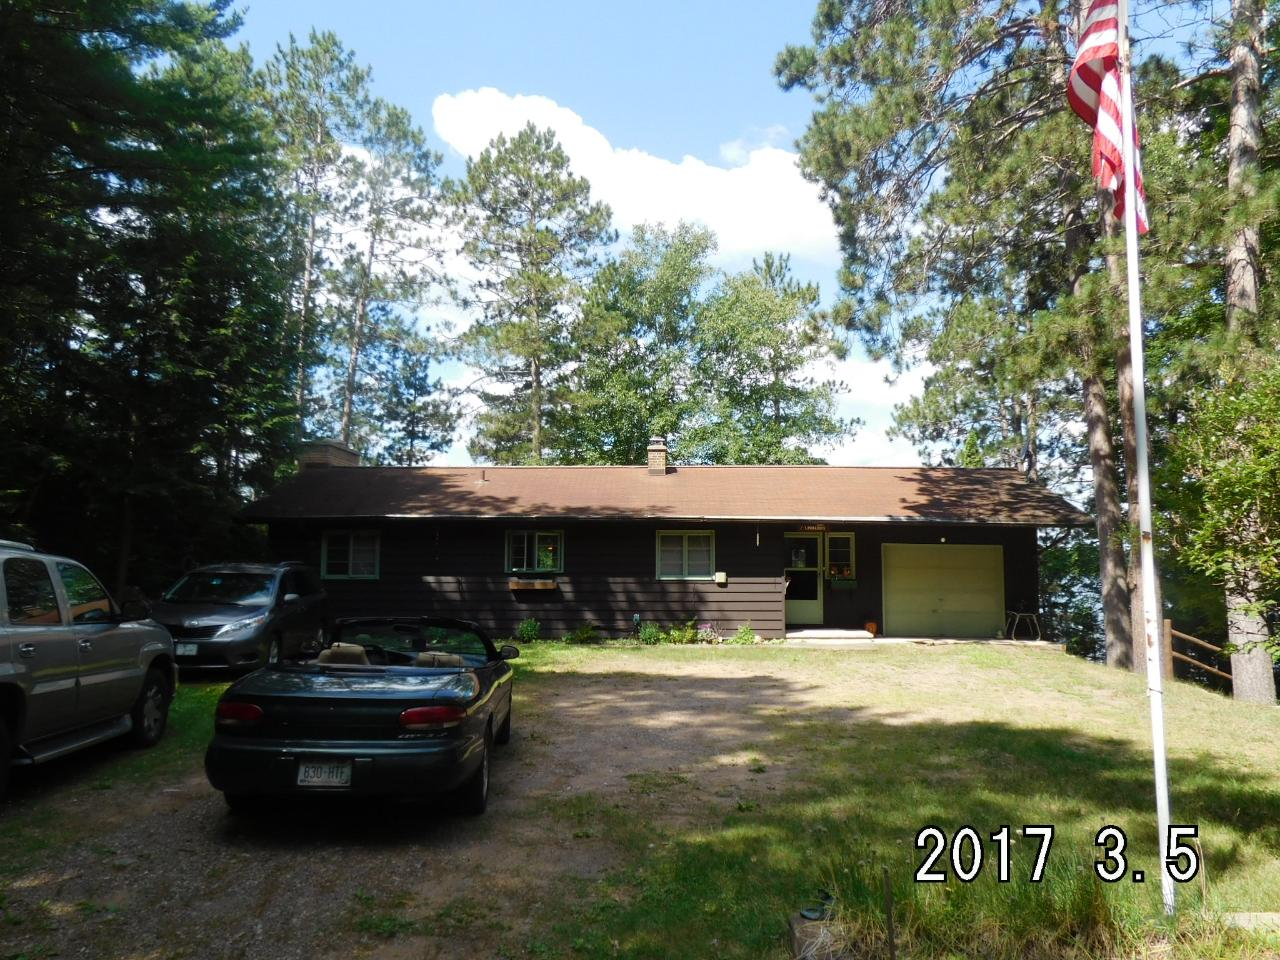 Looking for privacy on Big Water? This 3 bedroom 2 bath house with fireplace and attached garage sits in the middle of 365' of frontage with sand beach, western exposure and almost 6 acres of privacy. Walk out your lower level onto the deck of your 28x22 dry boathouse.Outbuildings included are a barn with workshop and an additional storage shed.